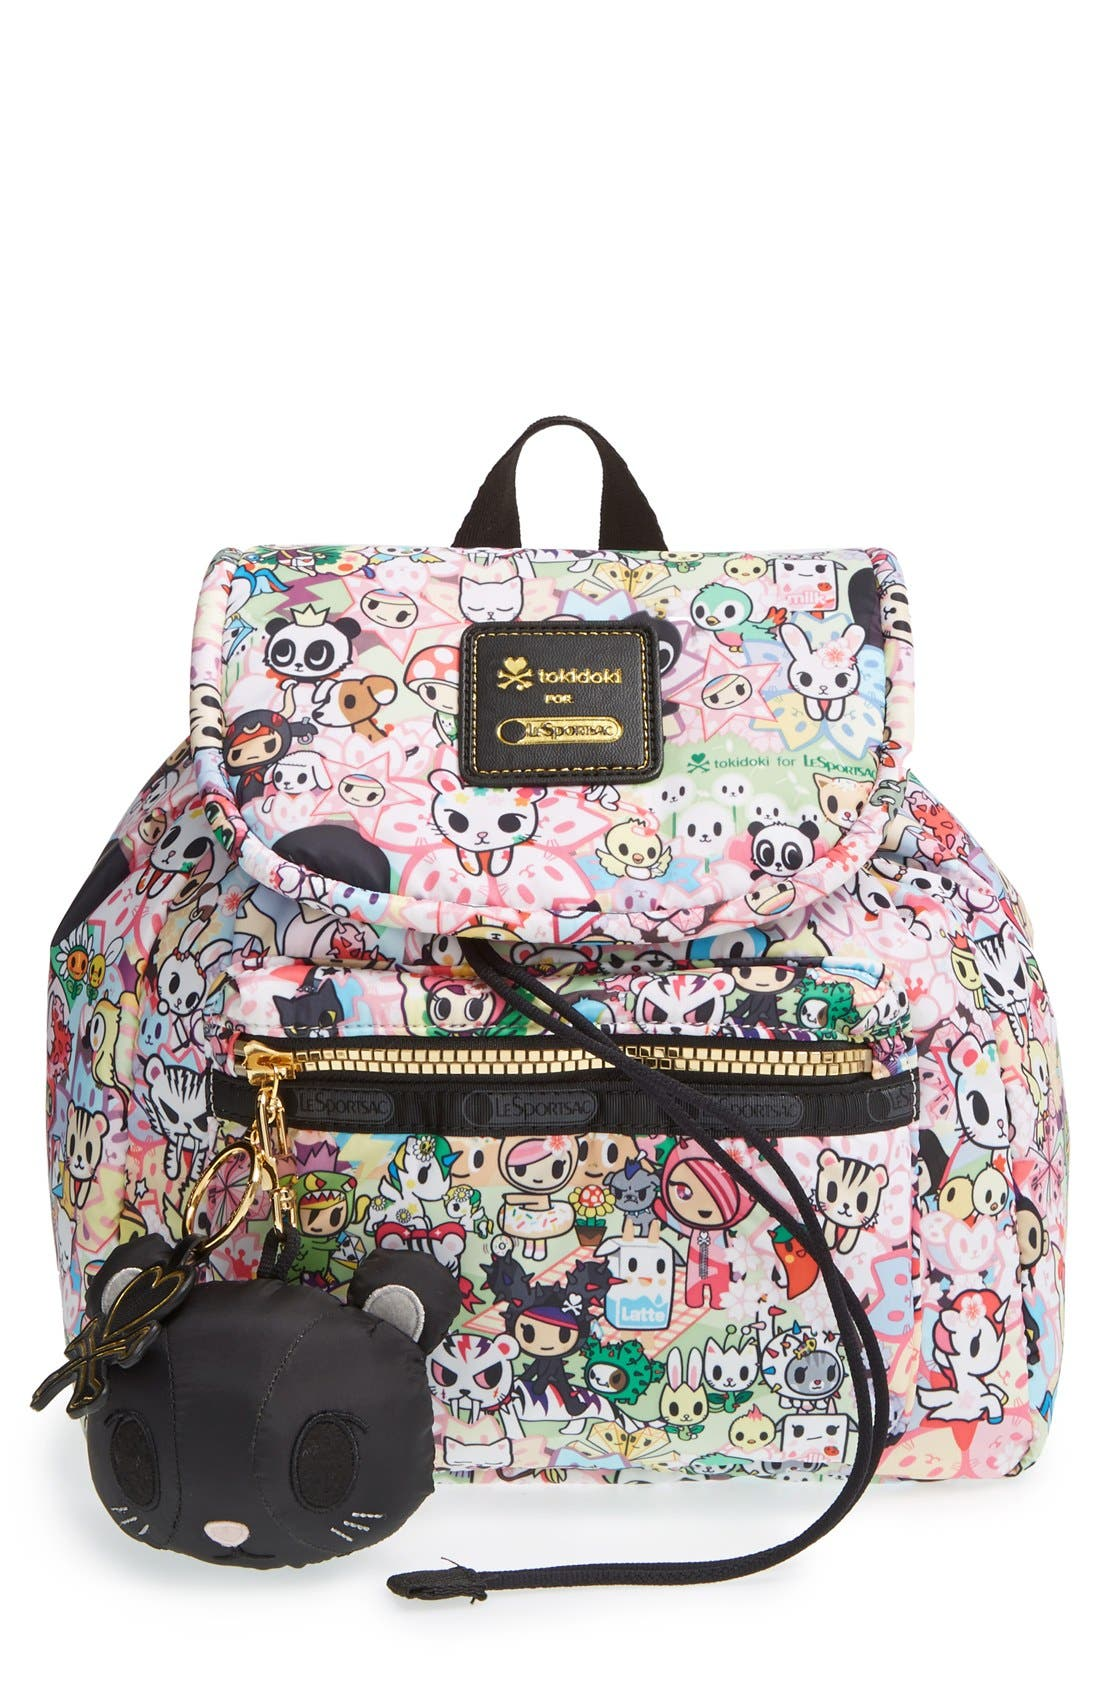 Alternate Image 1 Selected - tokidoki x LeSportsac 'Piccolina' Nylon Backpack